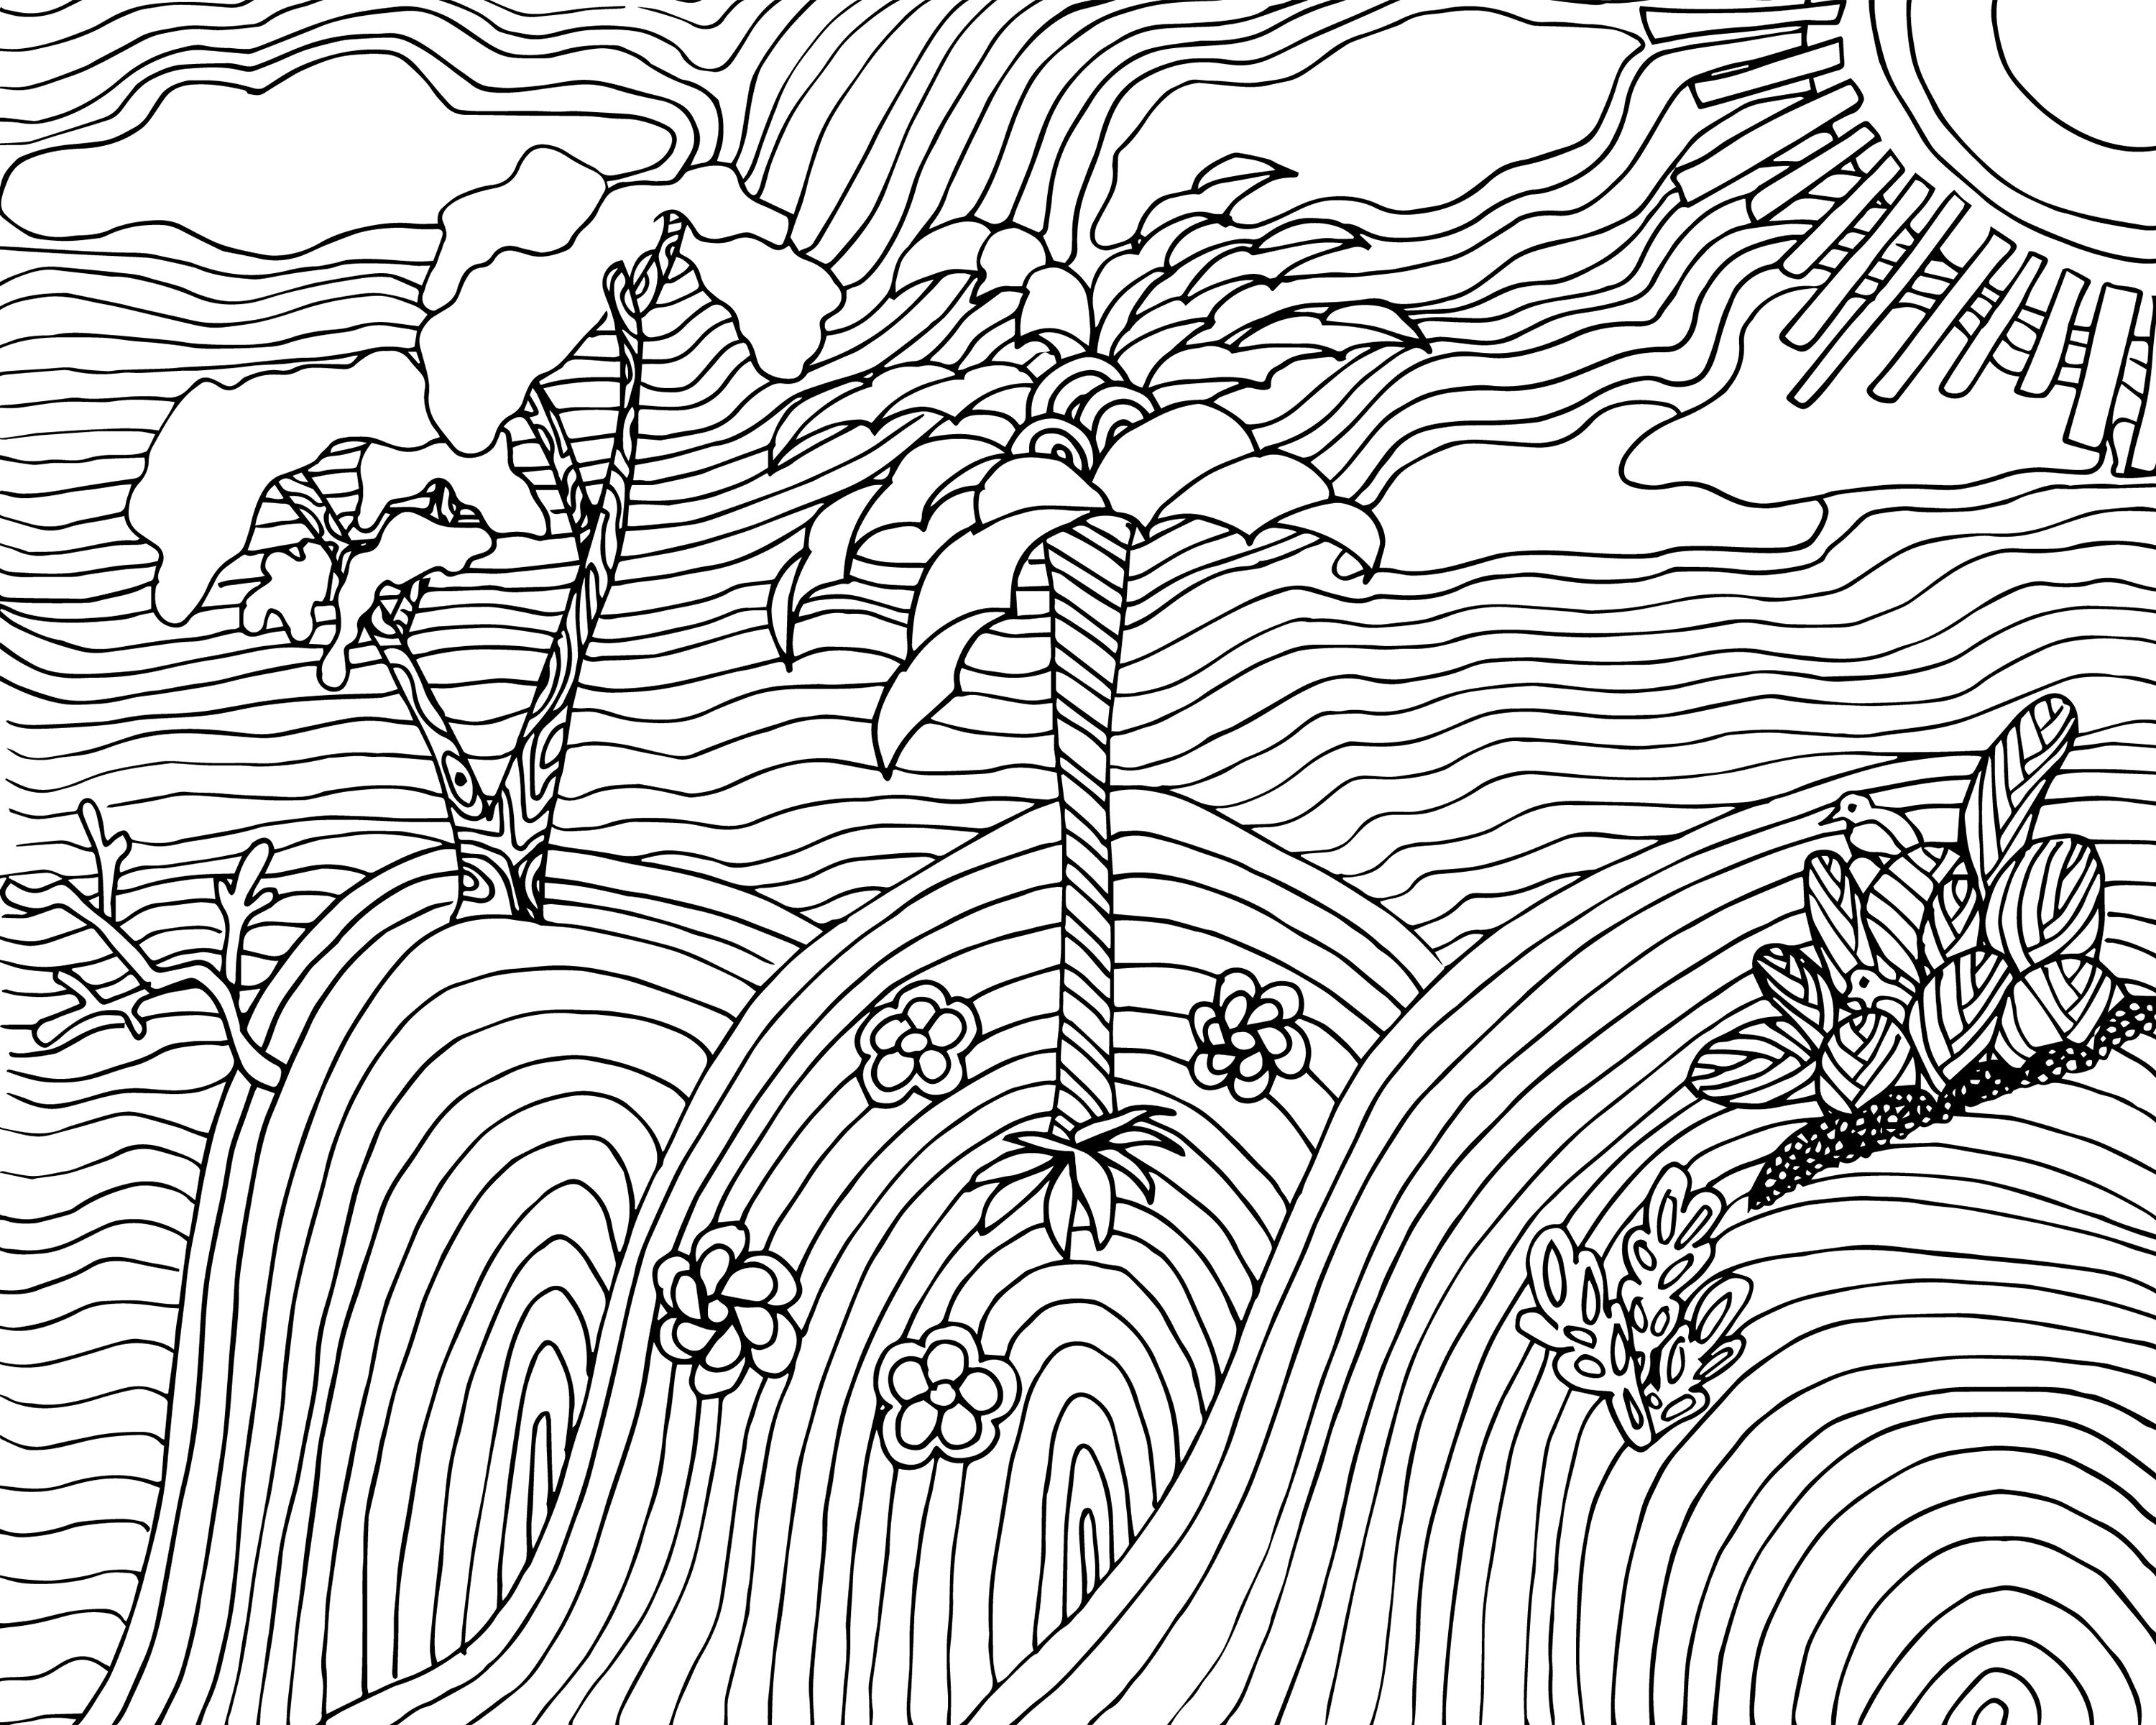 FREE landscape coloring page for